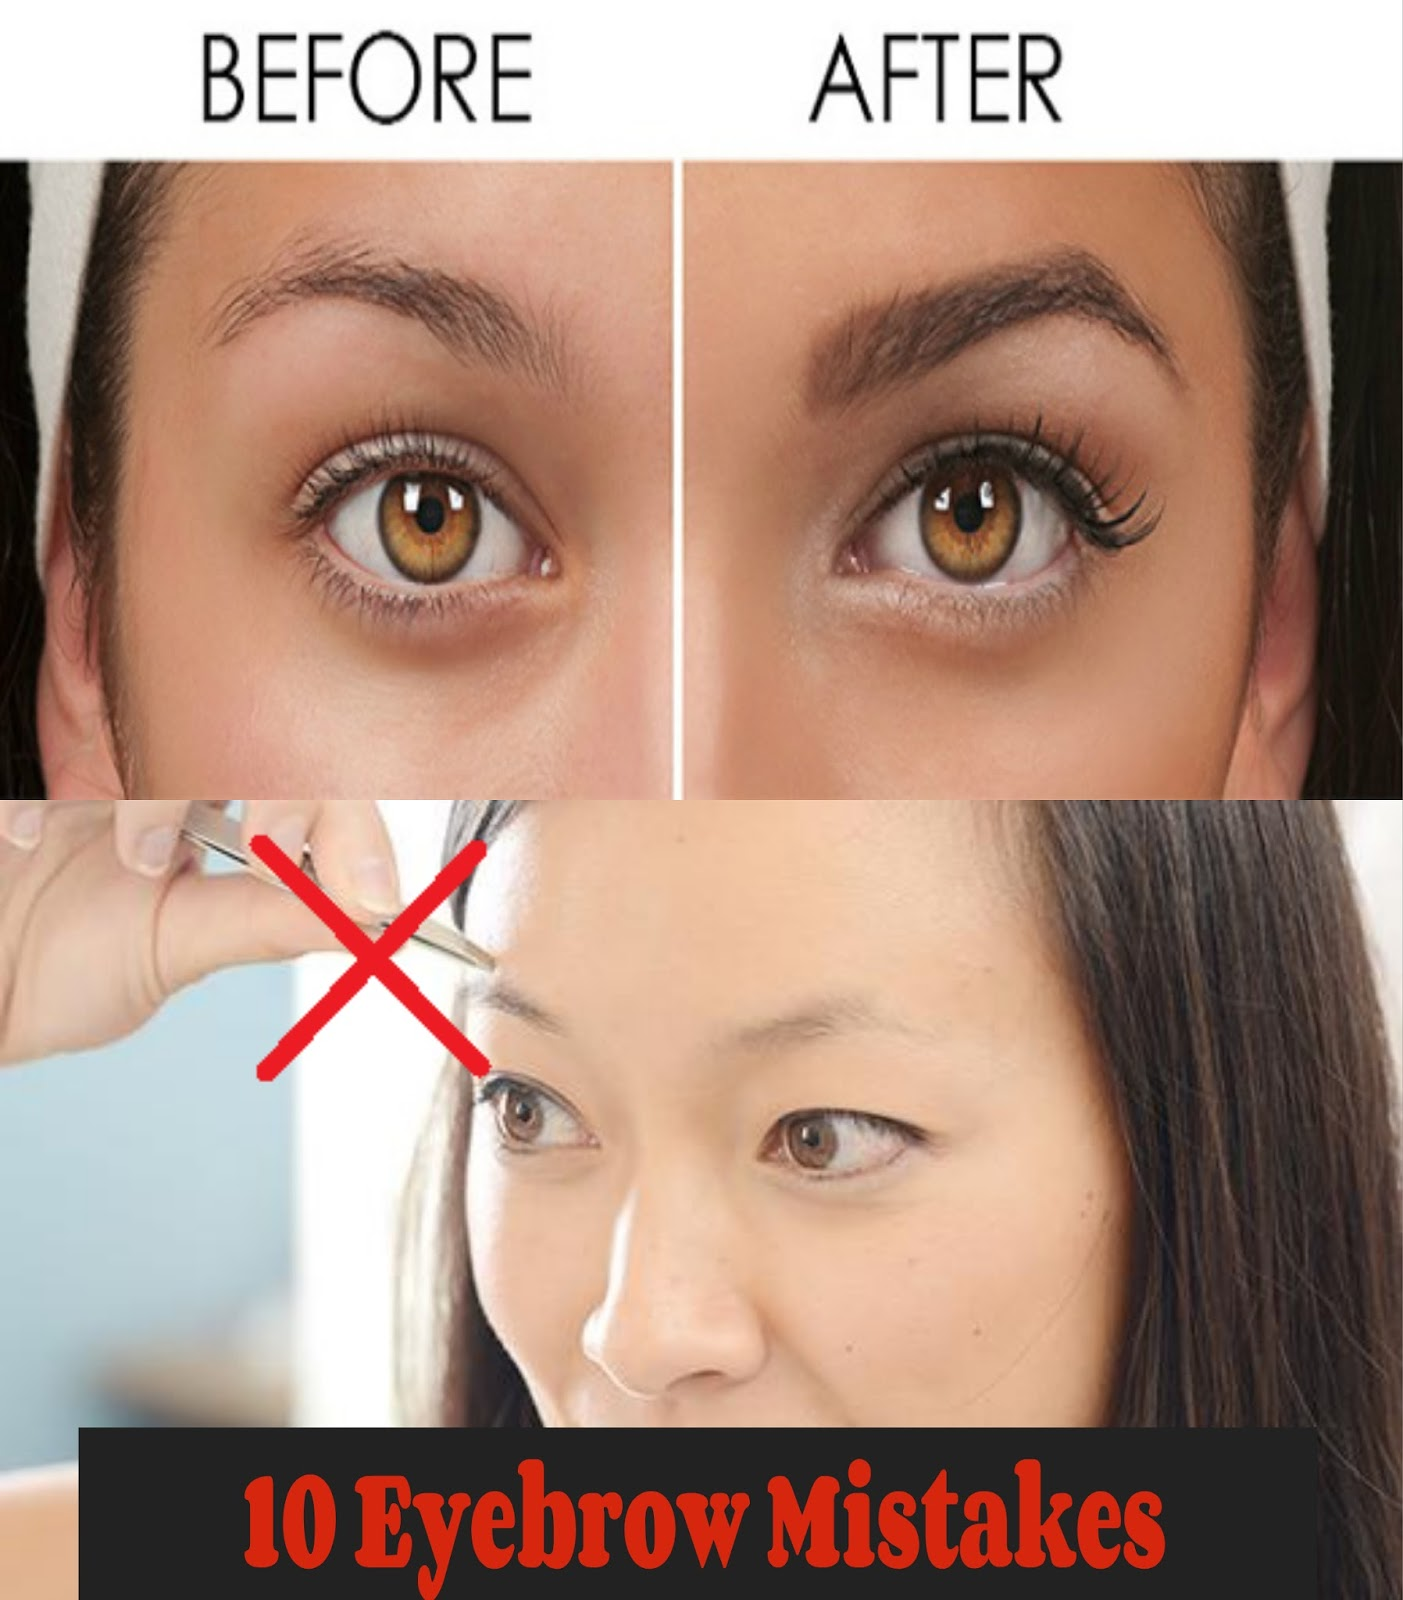 eyebrow shape mistakes eyebrow shape mistakes eyebrow ...